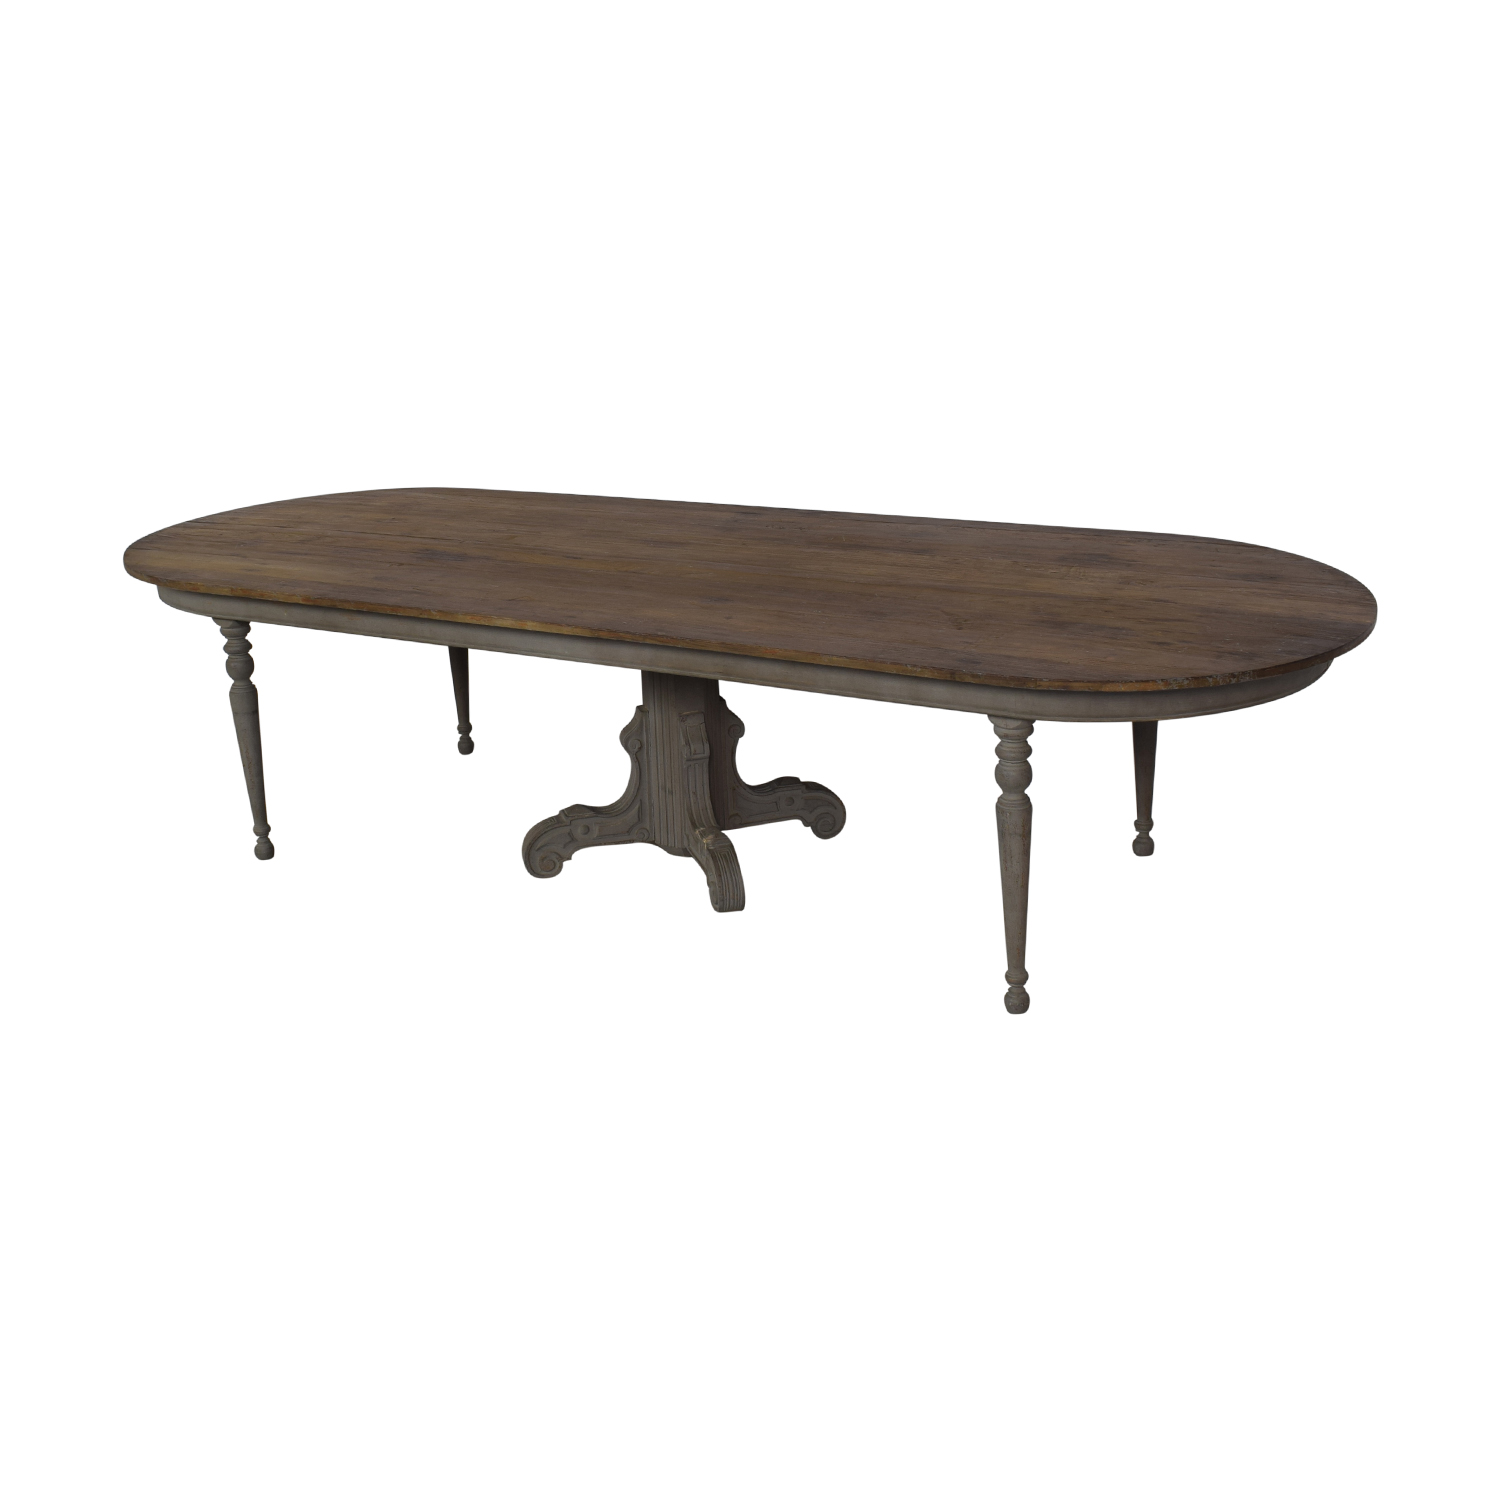 ABC Carpet & Home Dining Room Table sale